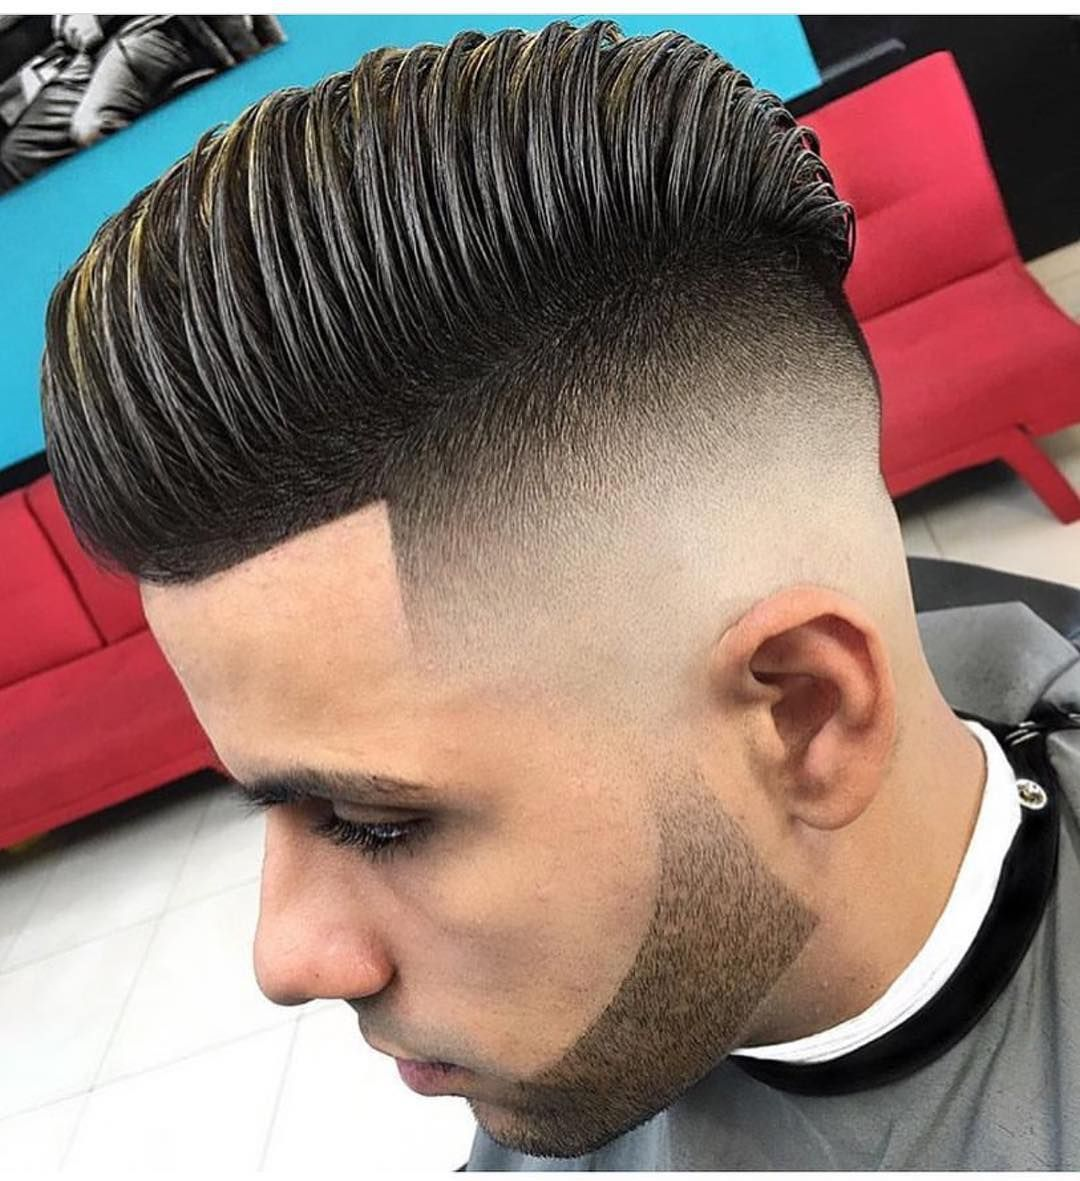 High Volume Comb Over With Skin Fade Undercut The Latest Hairstyles For Men And Women 2020 Hairstyleology High Fade Haircut Fade Haircut Styles Fade Haircut